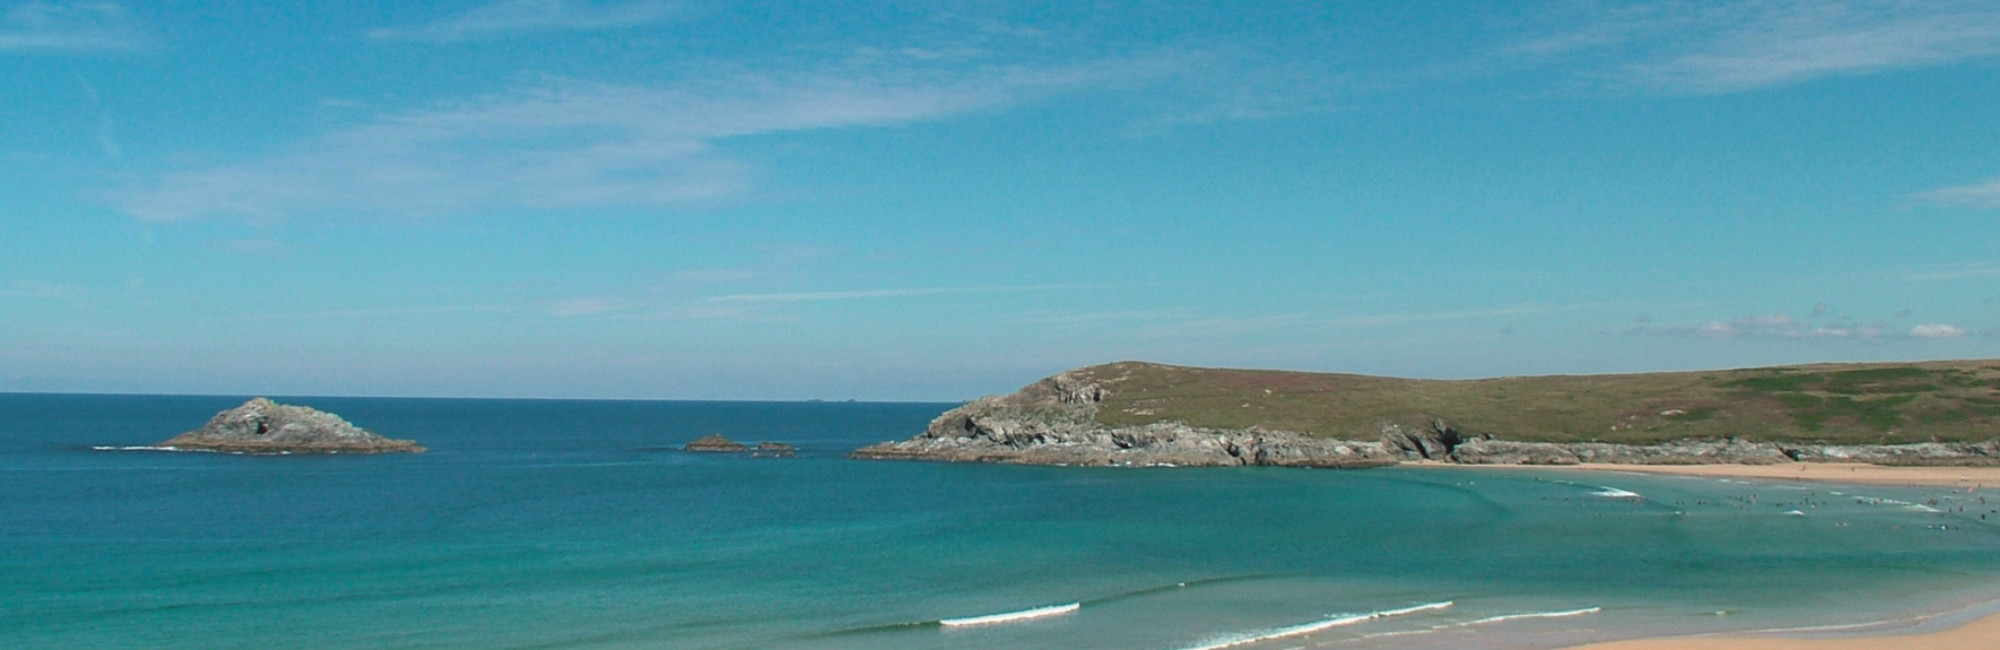 Crantock Bay Webcam - Crantock Bay Webcam